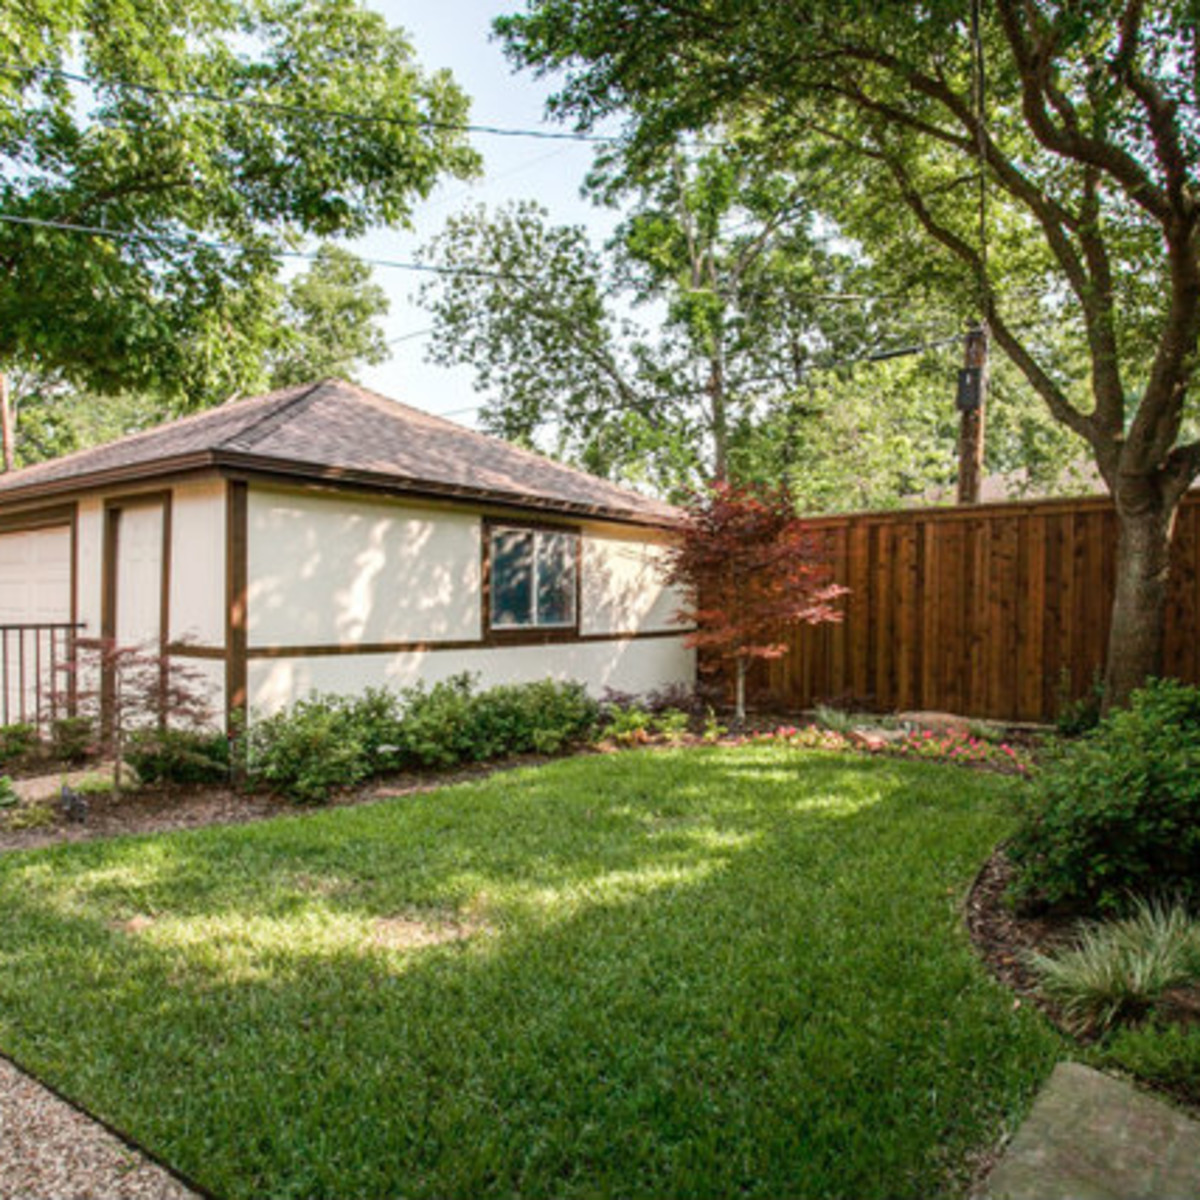 Backyard at 811 Monte Vista Dr. in Dallas